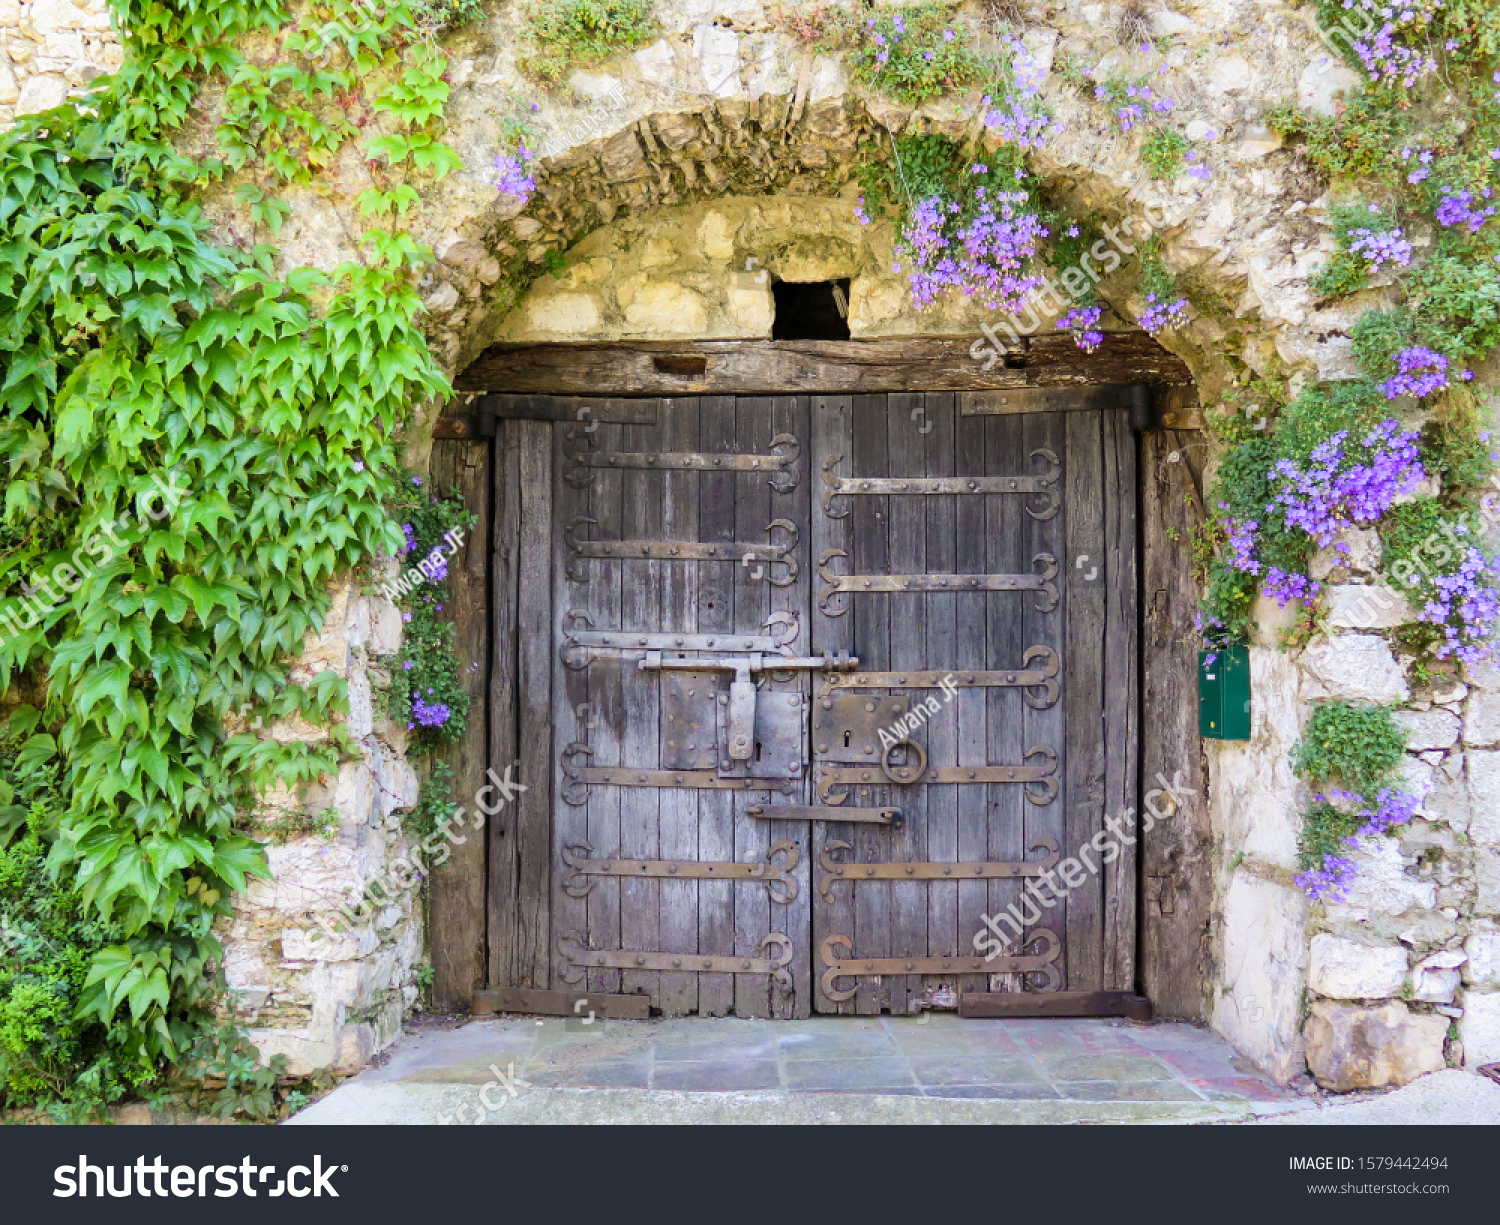 stock-photo-ancient-wooden-doors-of-an-o